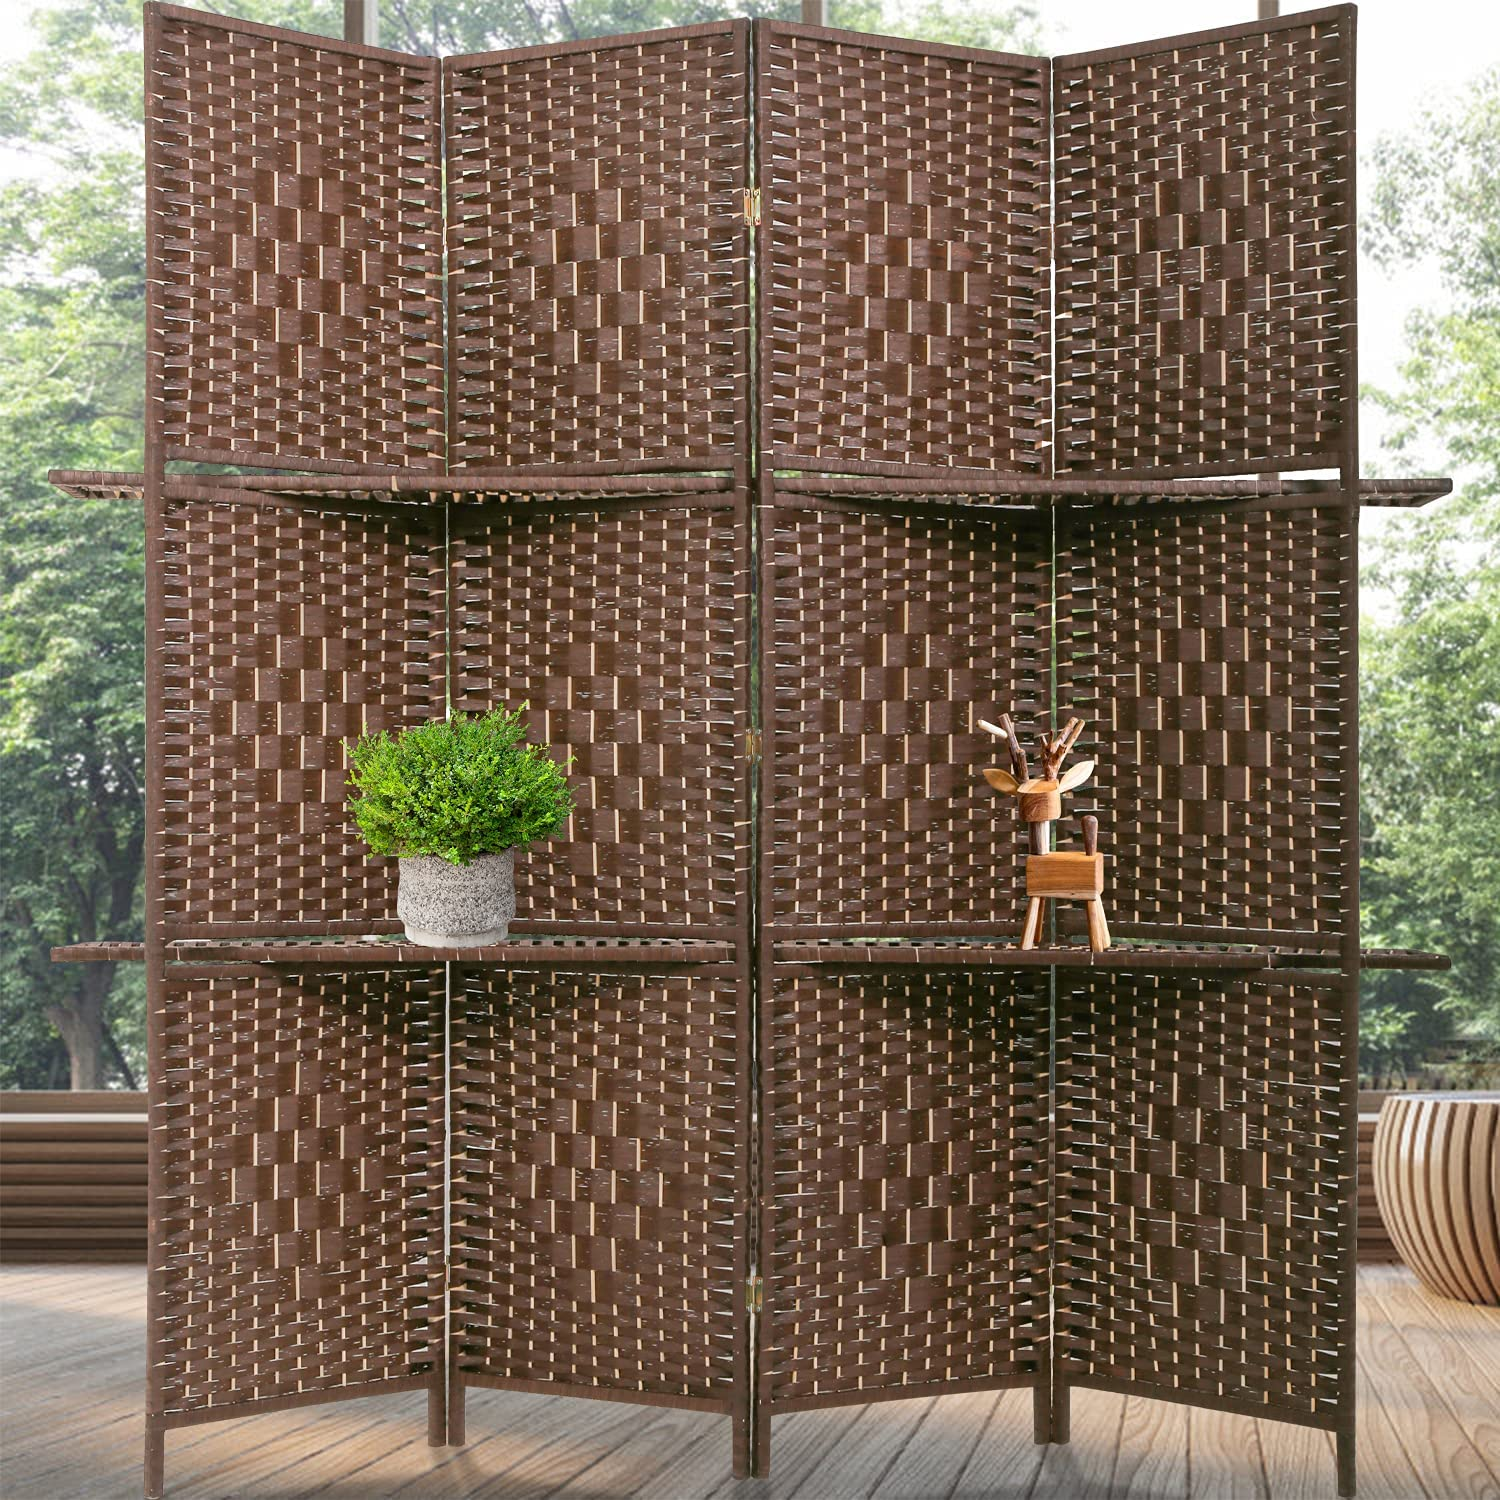 Room Divider 4 Panels Wood Frame Foldable Portable Separator Screen Folding Wall Dividers with Removable Storage Shelves for Home Living Room,Brown